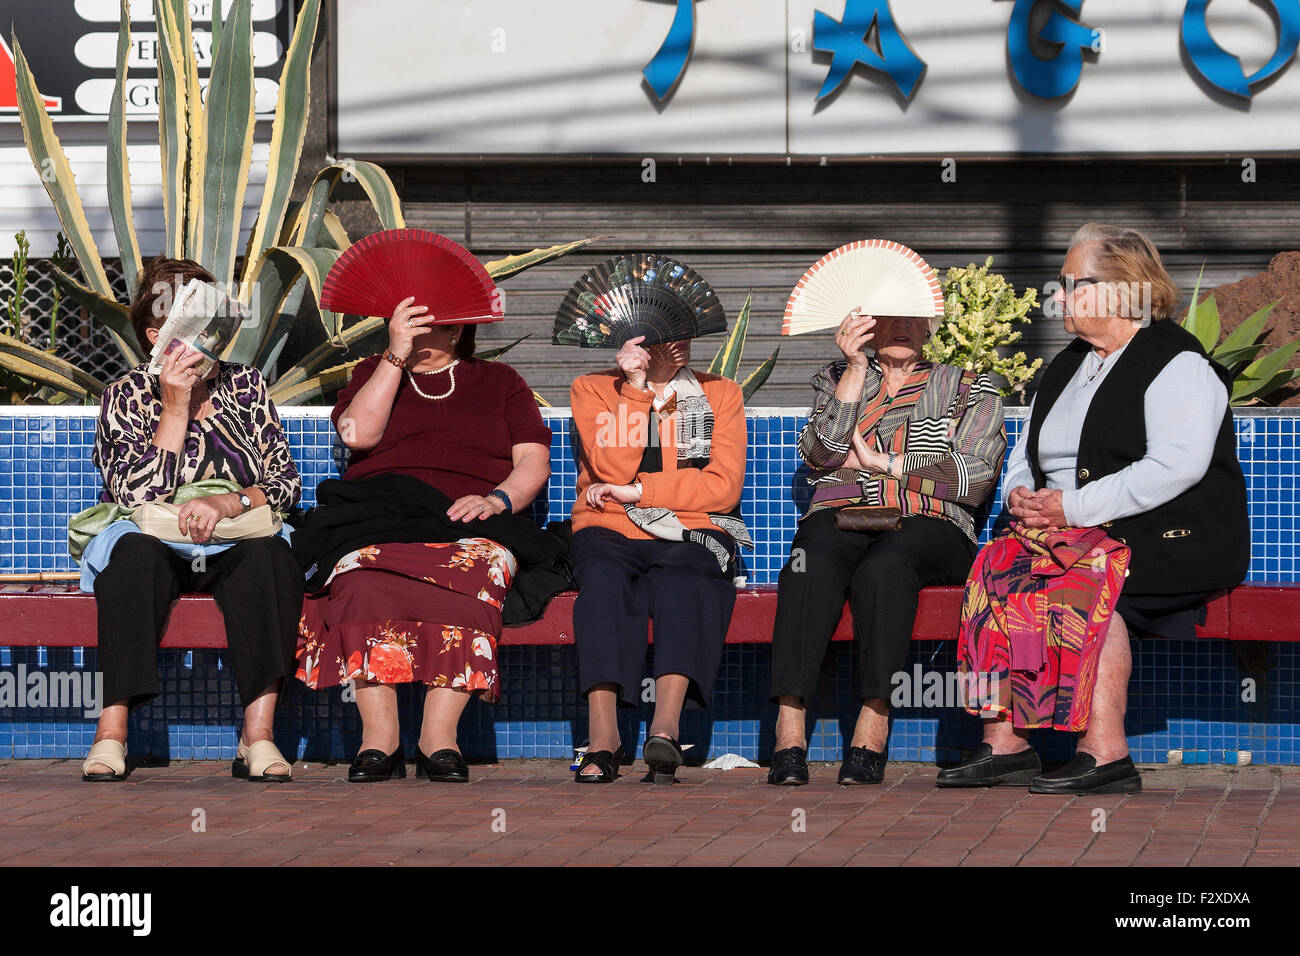 Women protecting their faces from the sun with fans, Las Palmas, Gran Canaria, Canary Islands, Spain - Stock Image